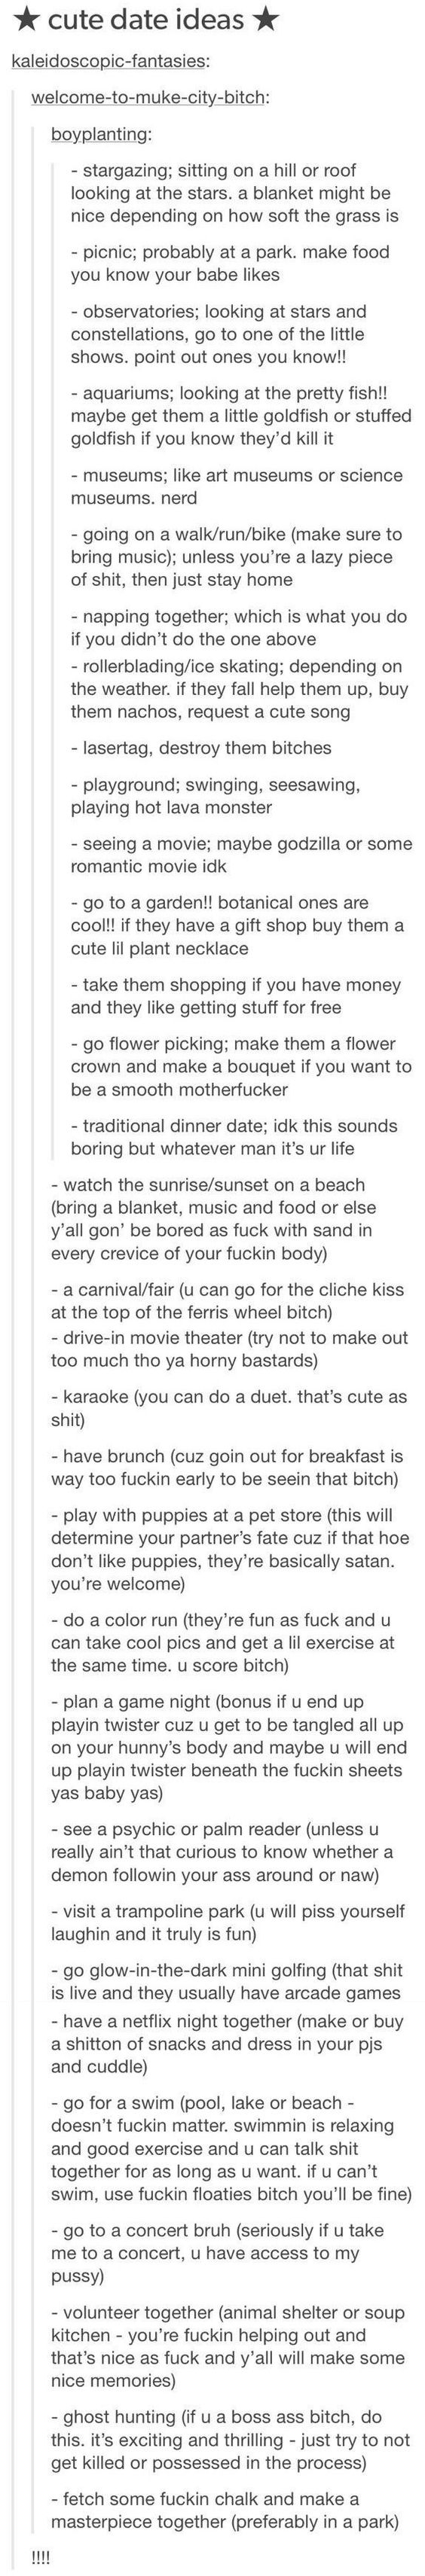 What to do on a third date